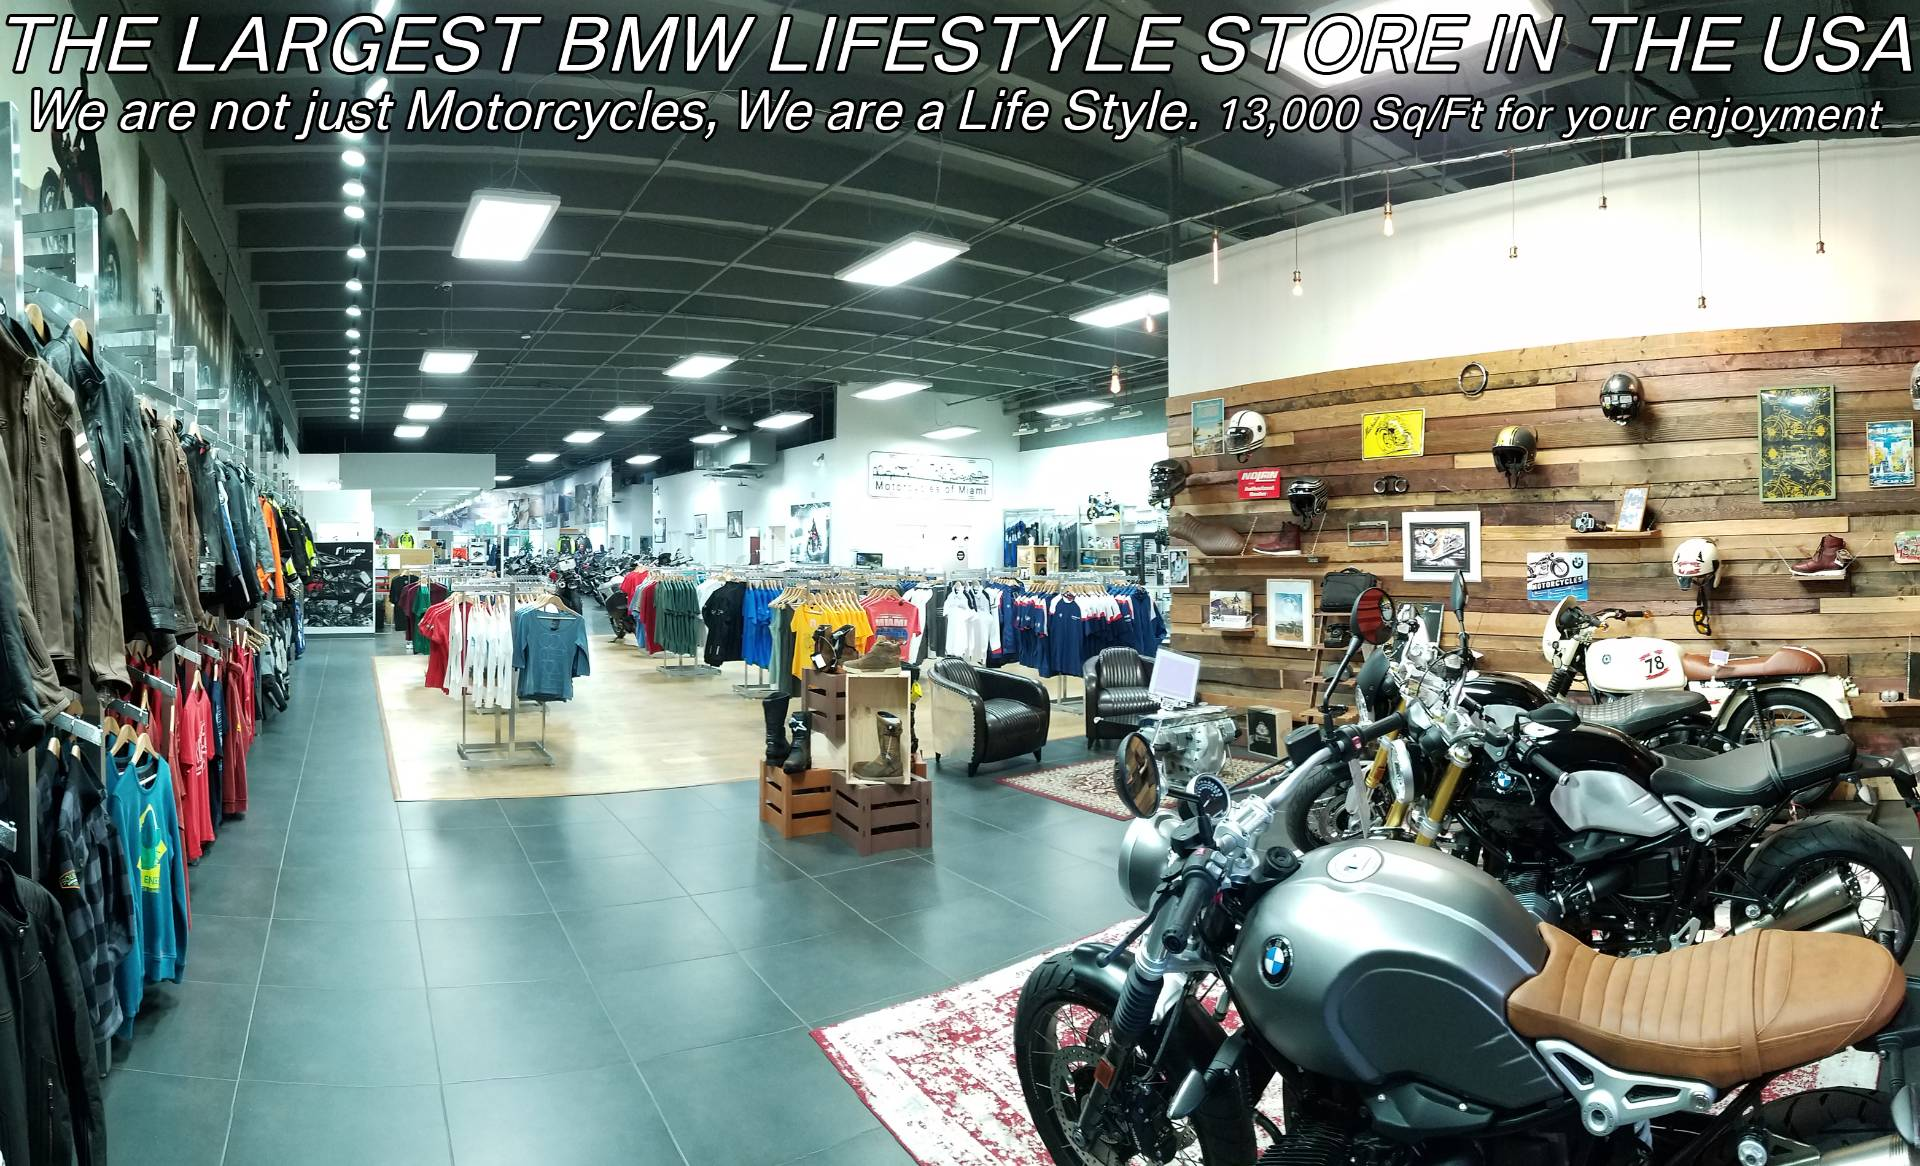 New 2020 2019 BMW R NineT for sale, BMW for sale, BMW Motorcycle Café Racer, new BMW Caffe, Cafe Racer, BMW. BMW Motorcycles of Miami, Motorcycles of Miami, Motorcycles Miami, New Motorcycles, Used Motorcycles, pre-owned. #BMWMotorcyclesOfMiami #MotorcyclesOfMiami. - Photo 43